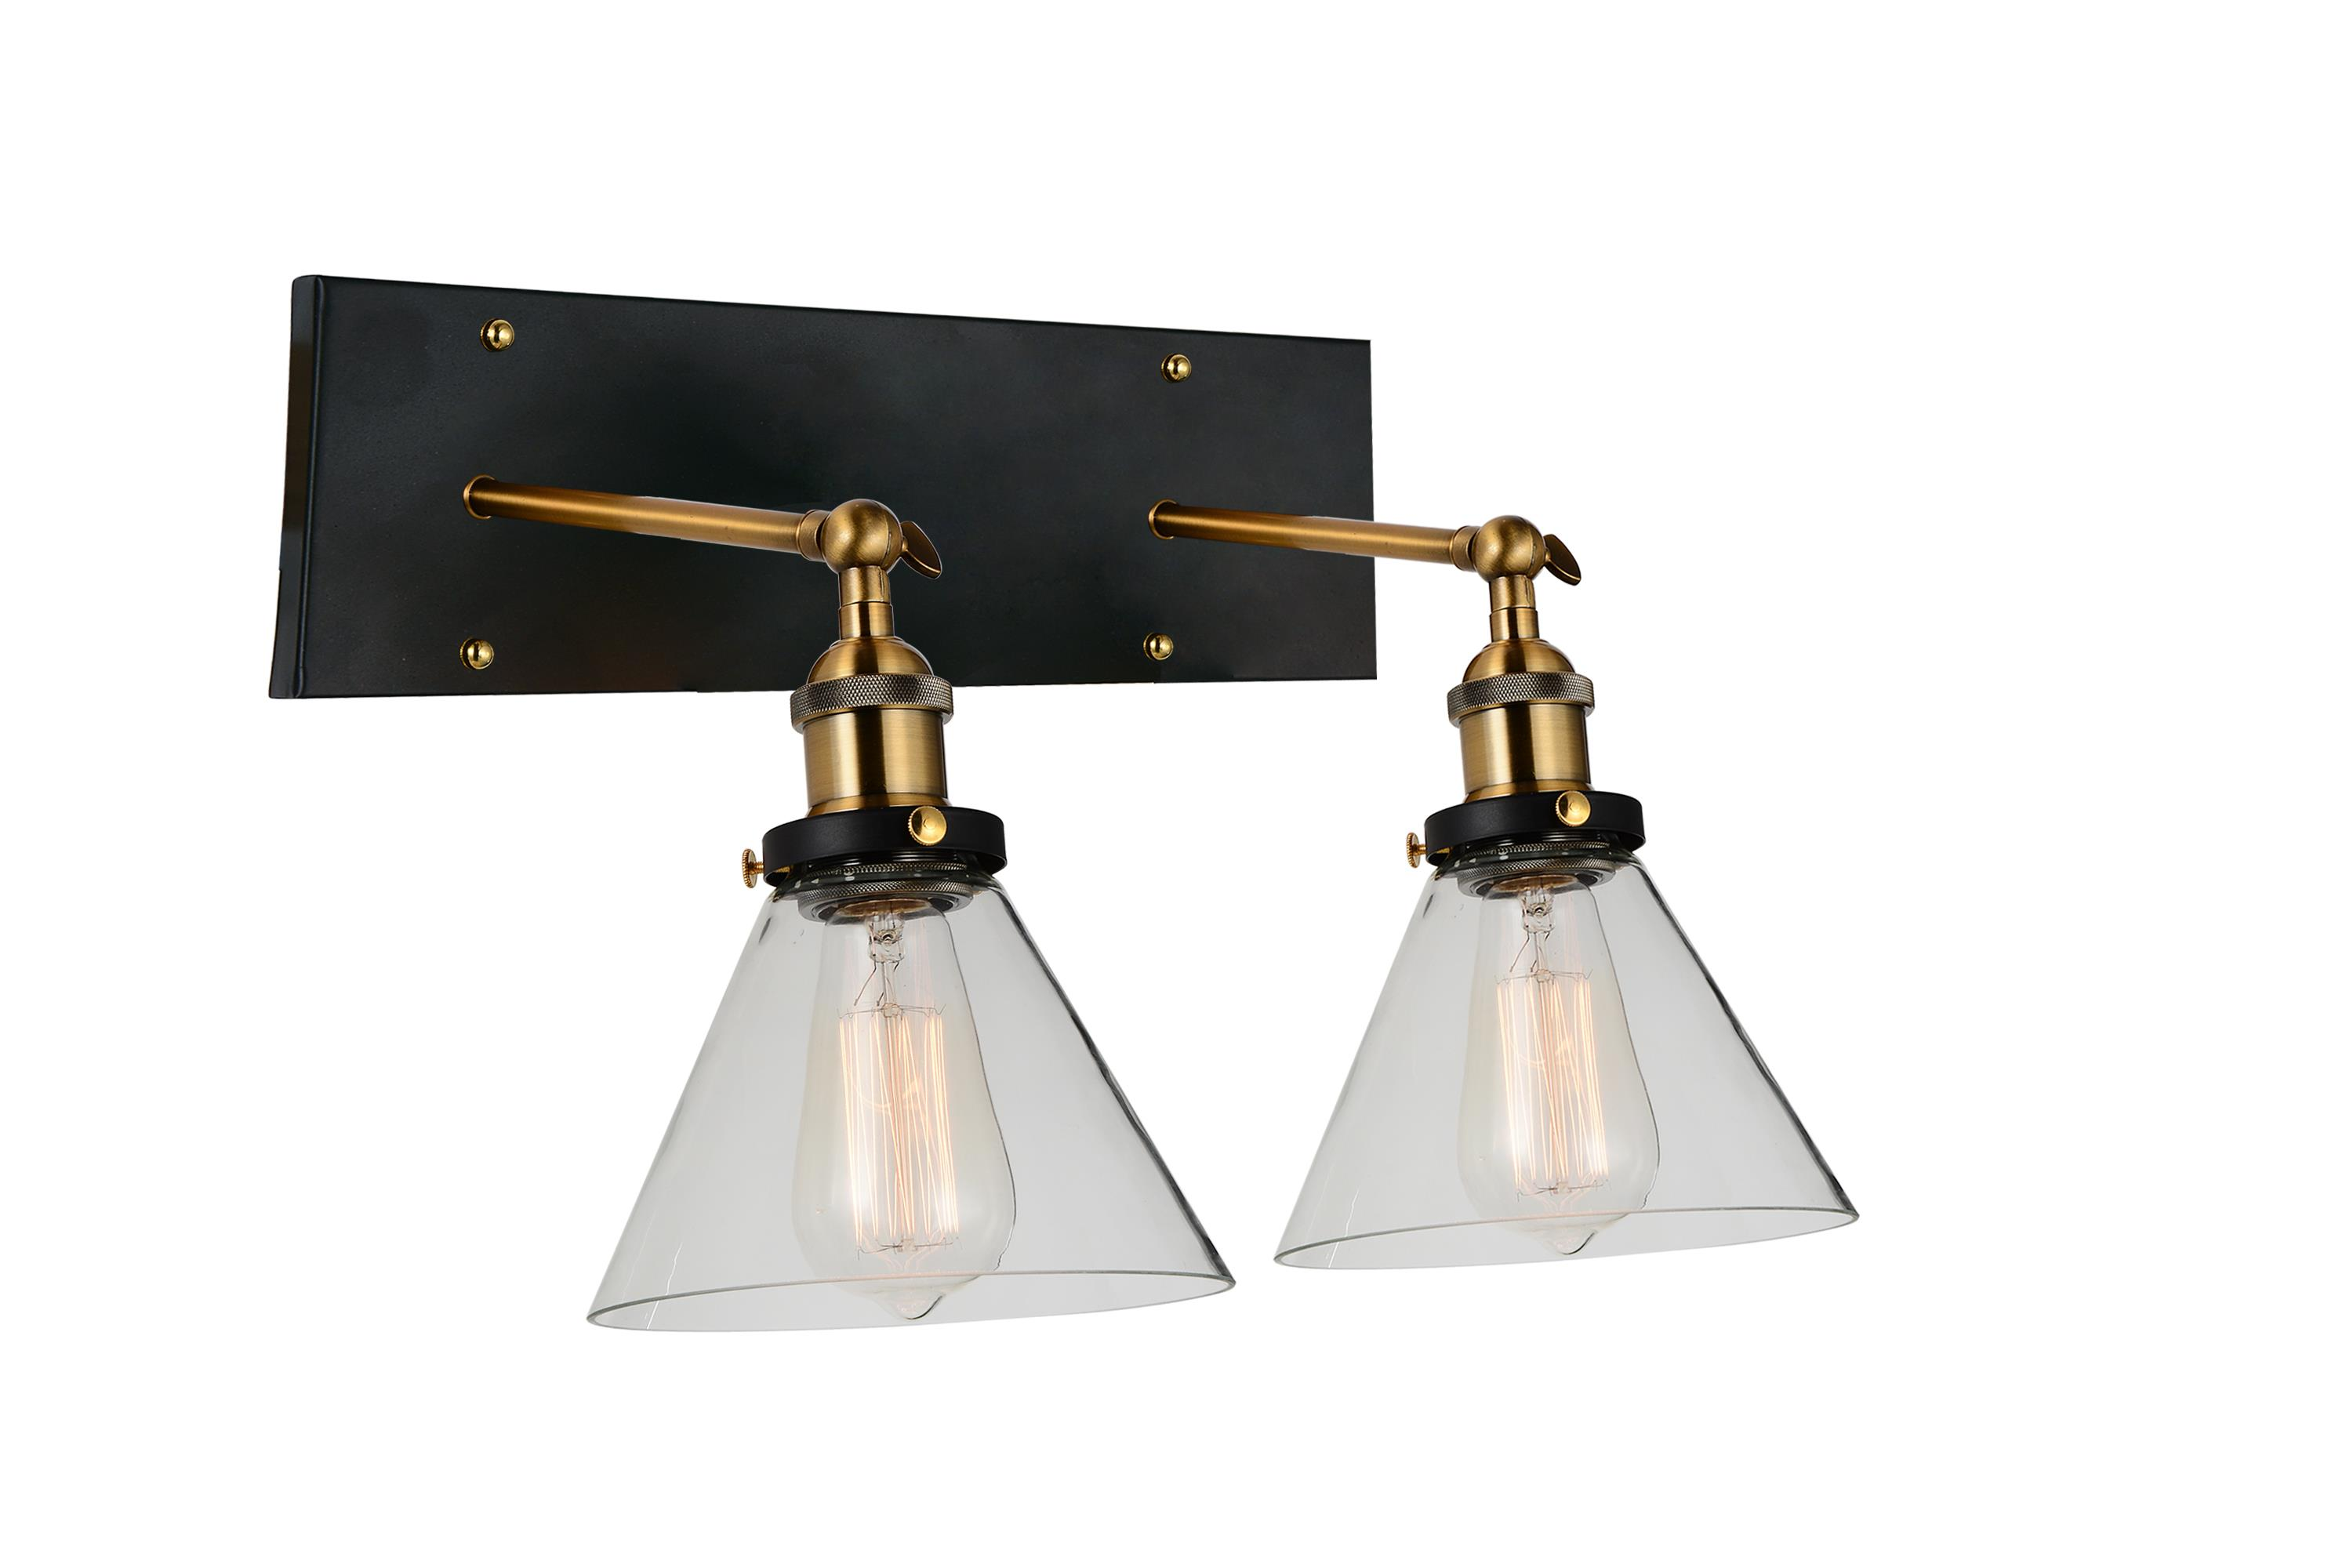 Viva Lifestyle Lighting 2 Light Wall Sconce Black Gold Brass Finish Walmart Canada